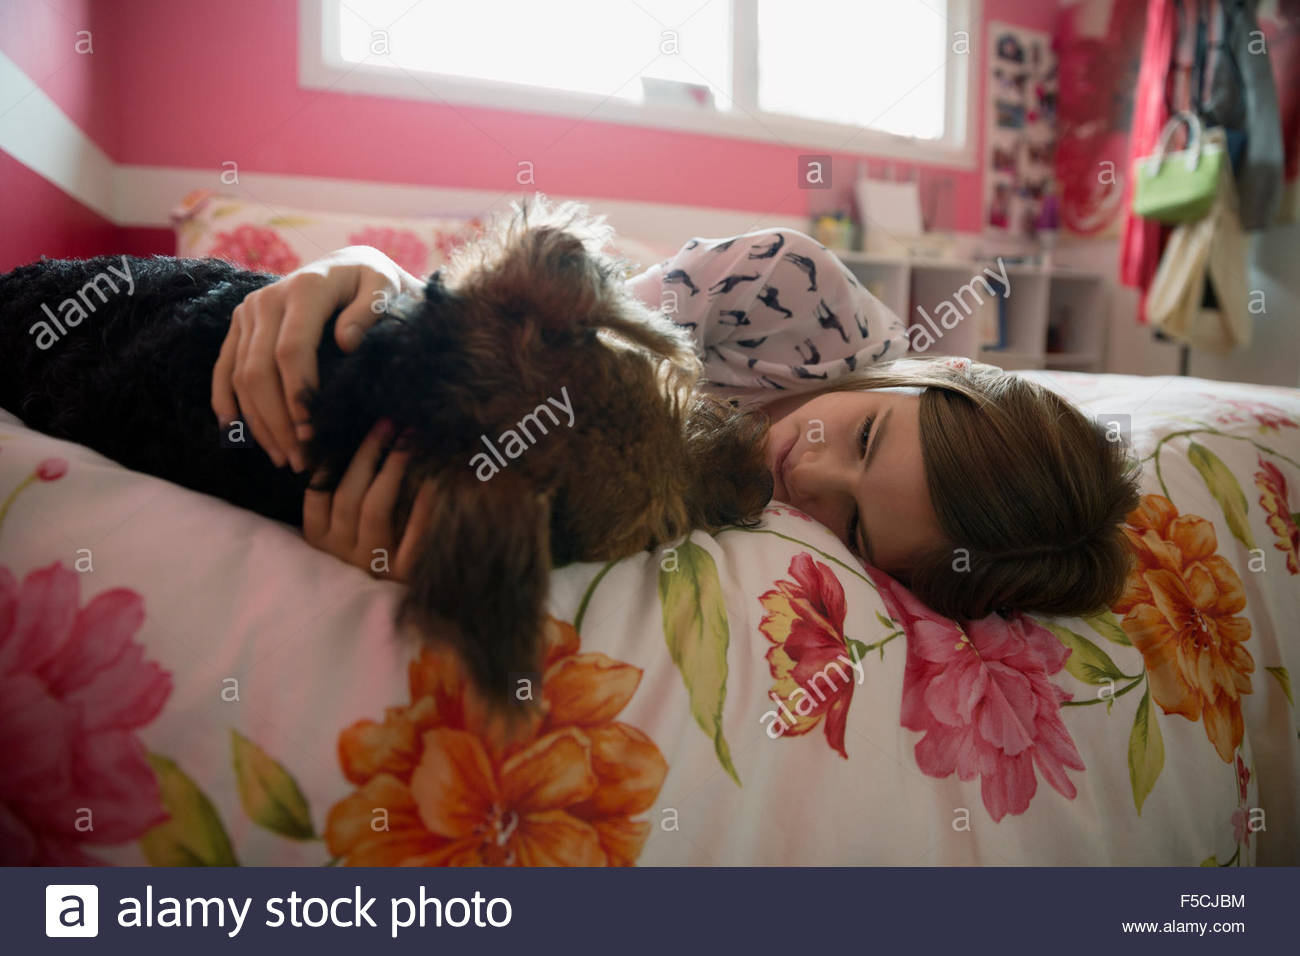 Girl cuddling dog face to face on bed - Stock Image